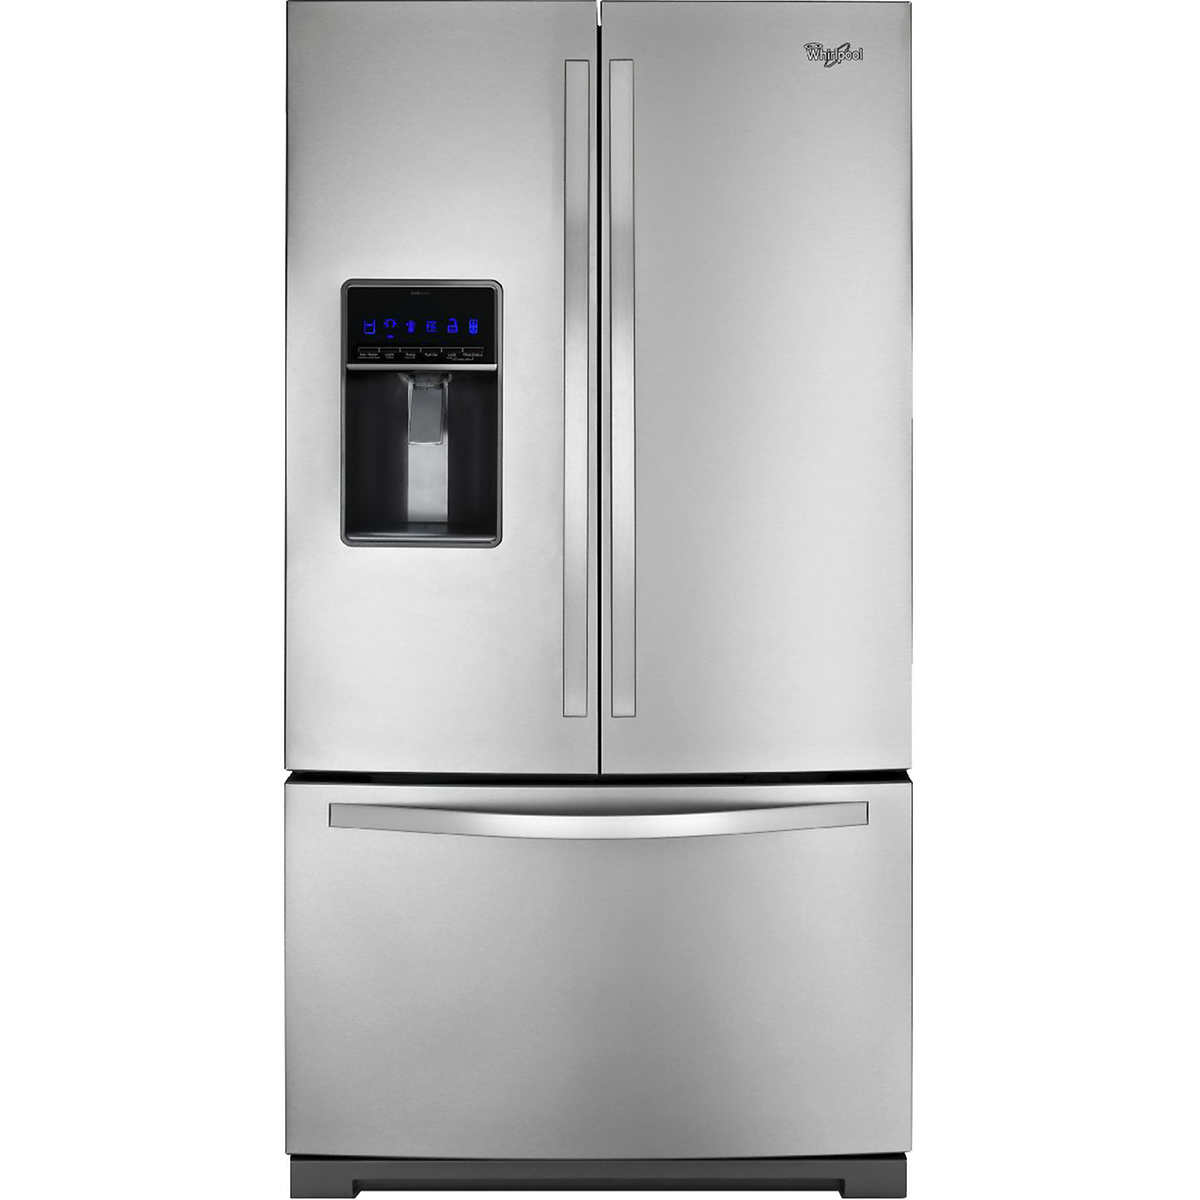 Image result for PIcture of a refrigerator